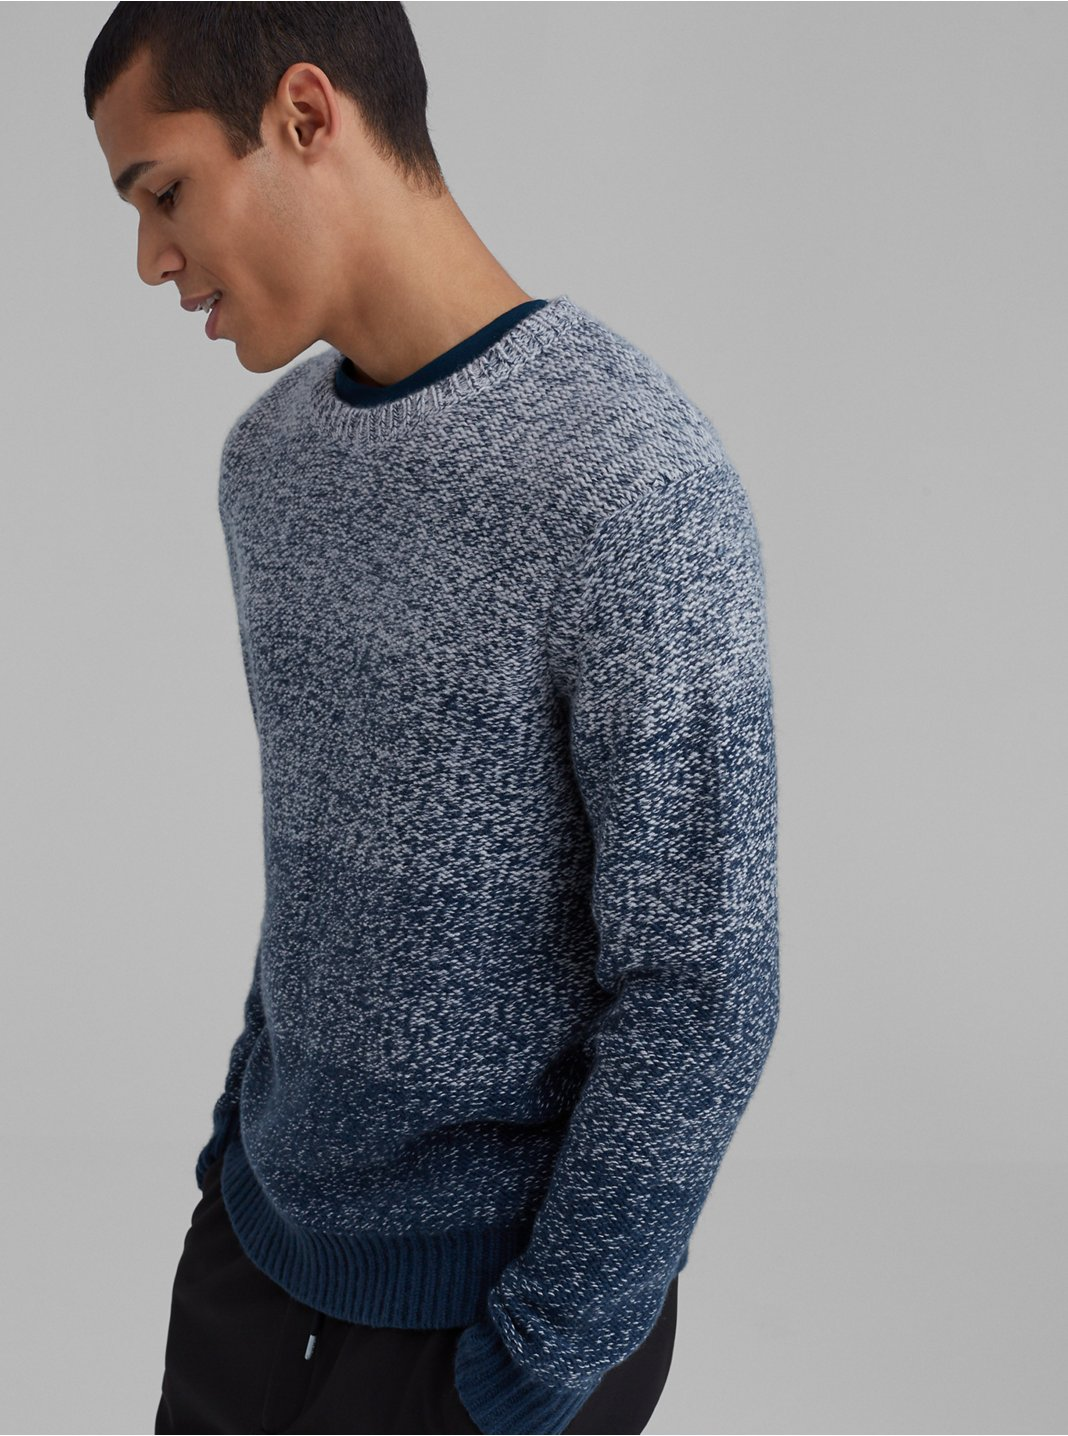 Cashmere Gradient Crewneck Sweater